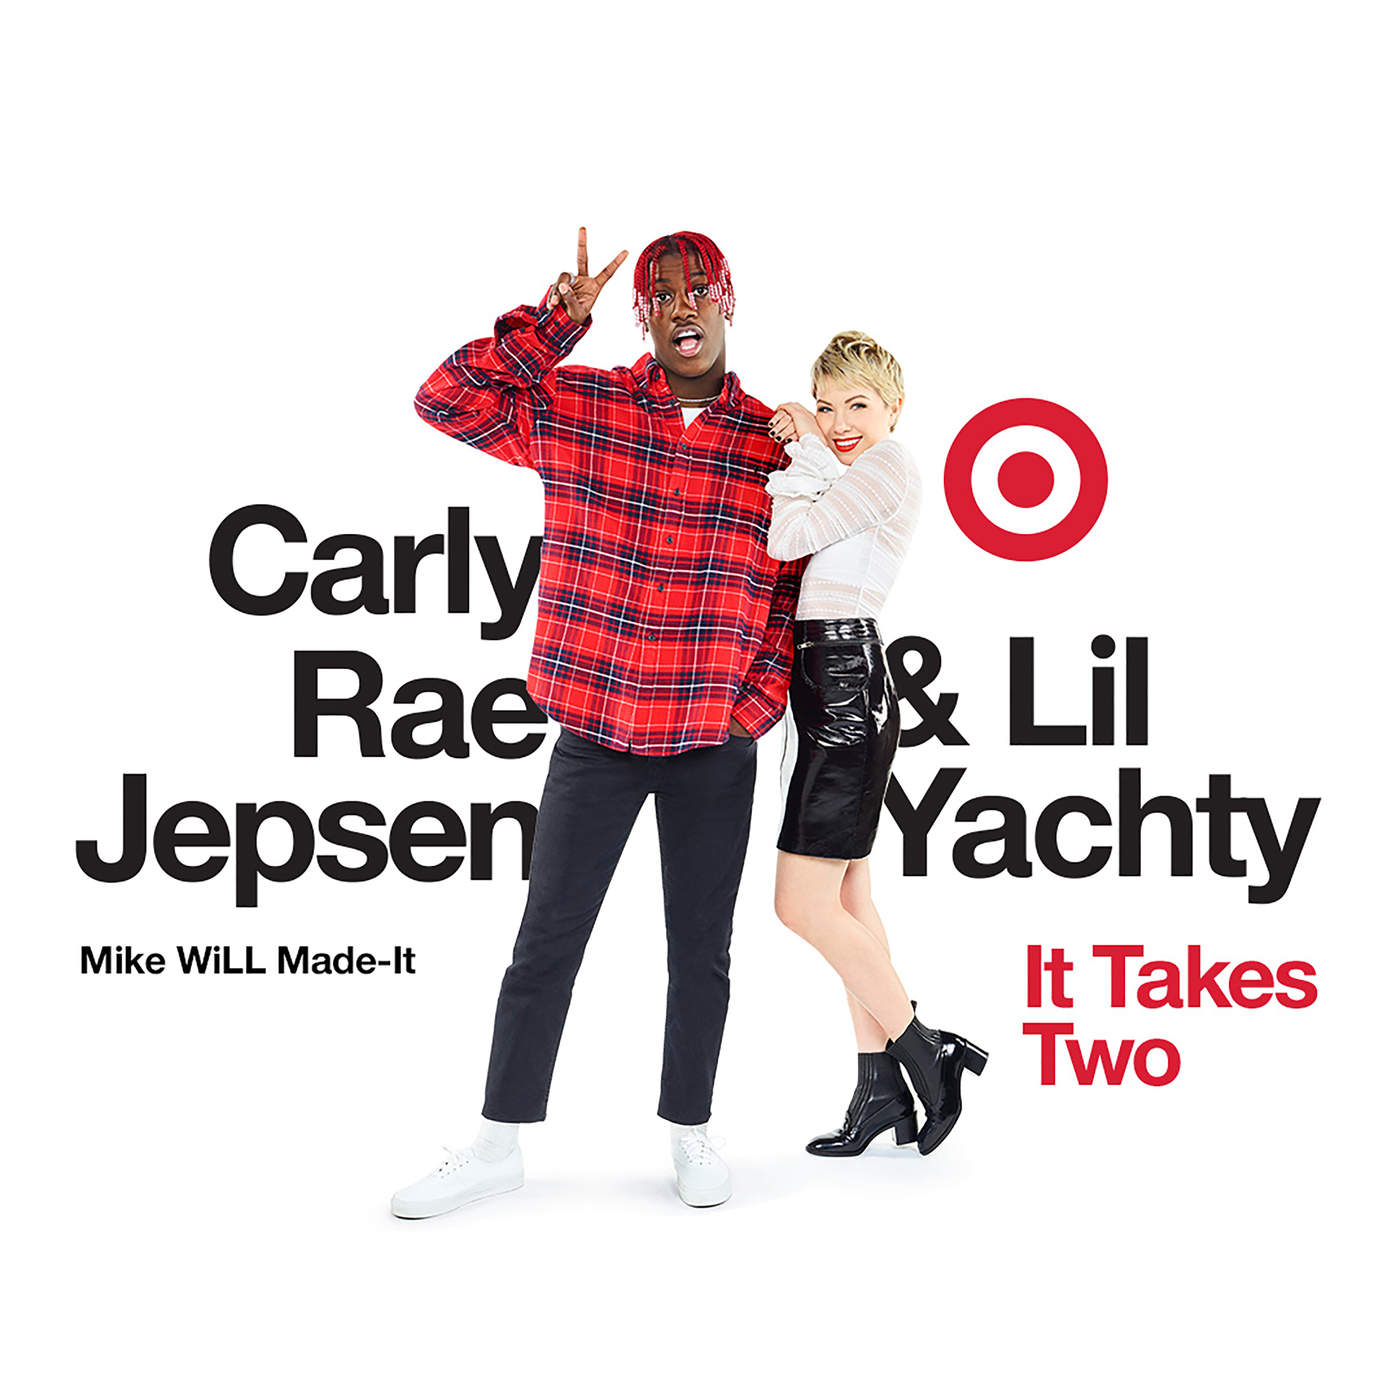 Mike Will Made-It, Lil Yachty & Carly Rae Jepsen - It Takes Two - Single Cover